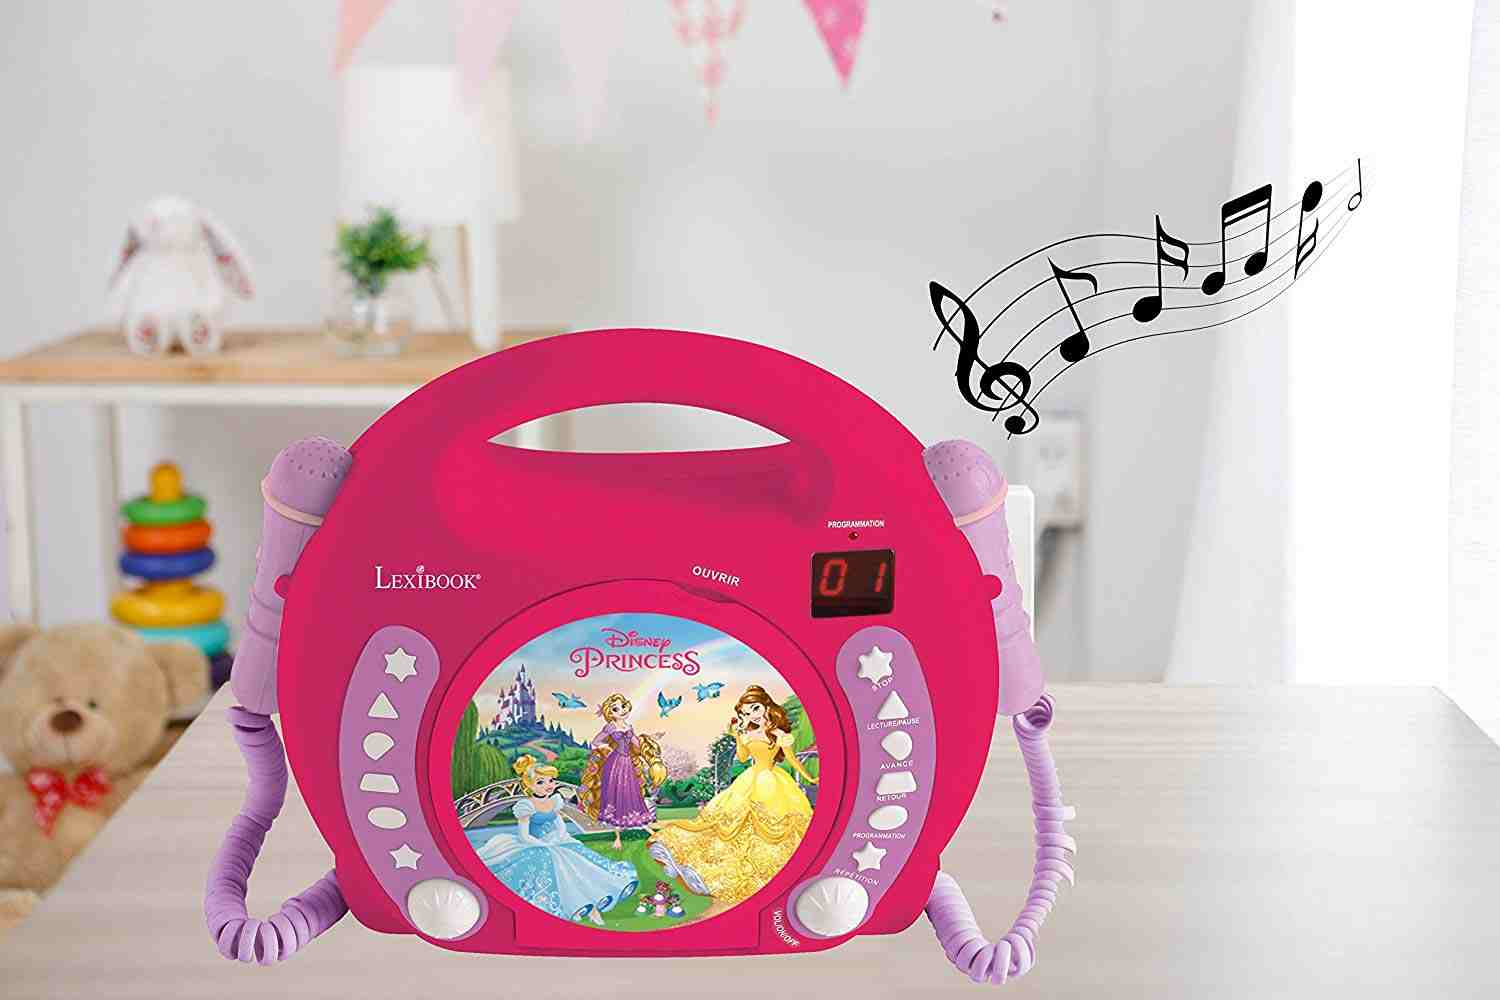 Top 5 Best Kid CD Players Reviews & Buying Guide